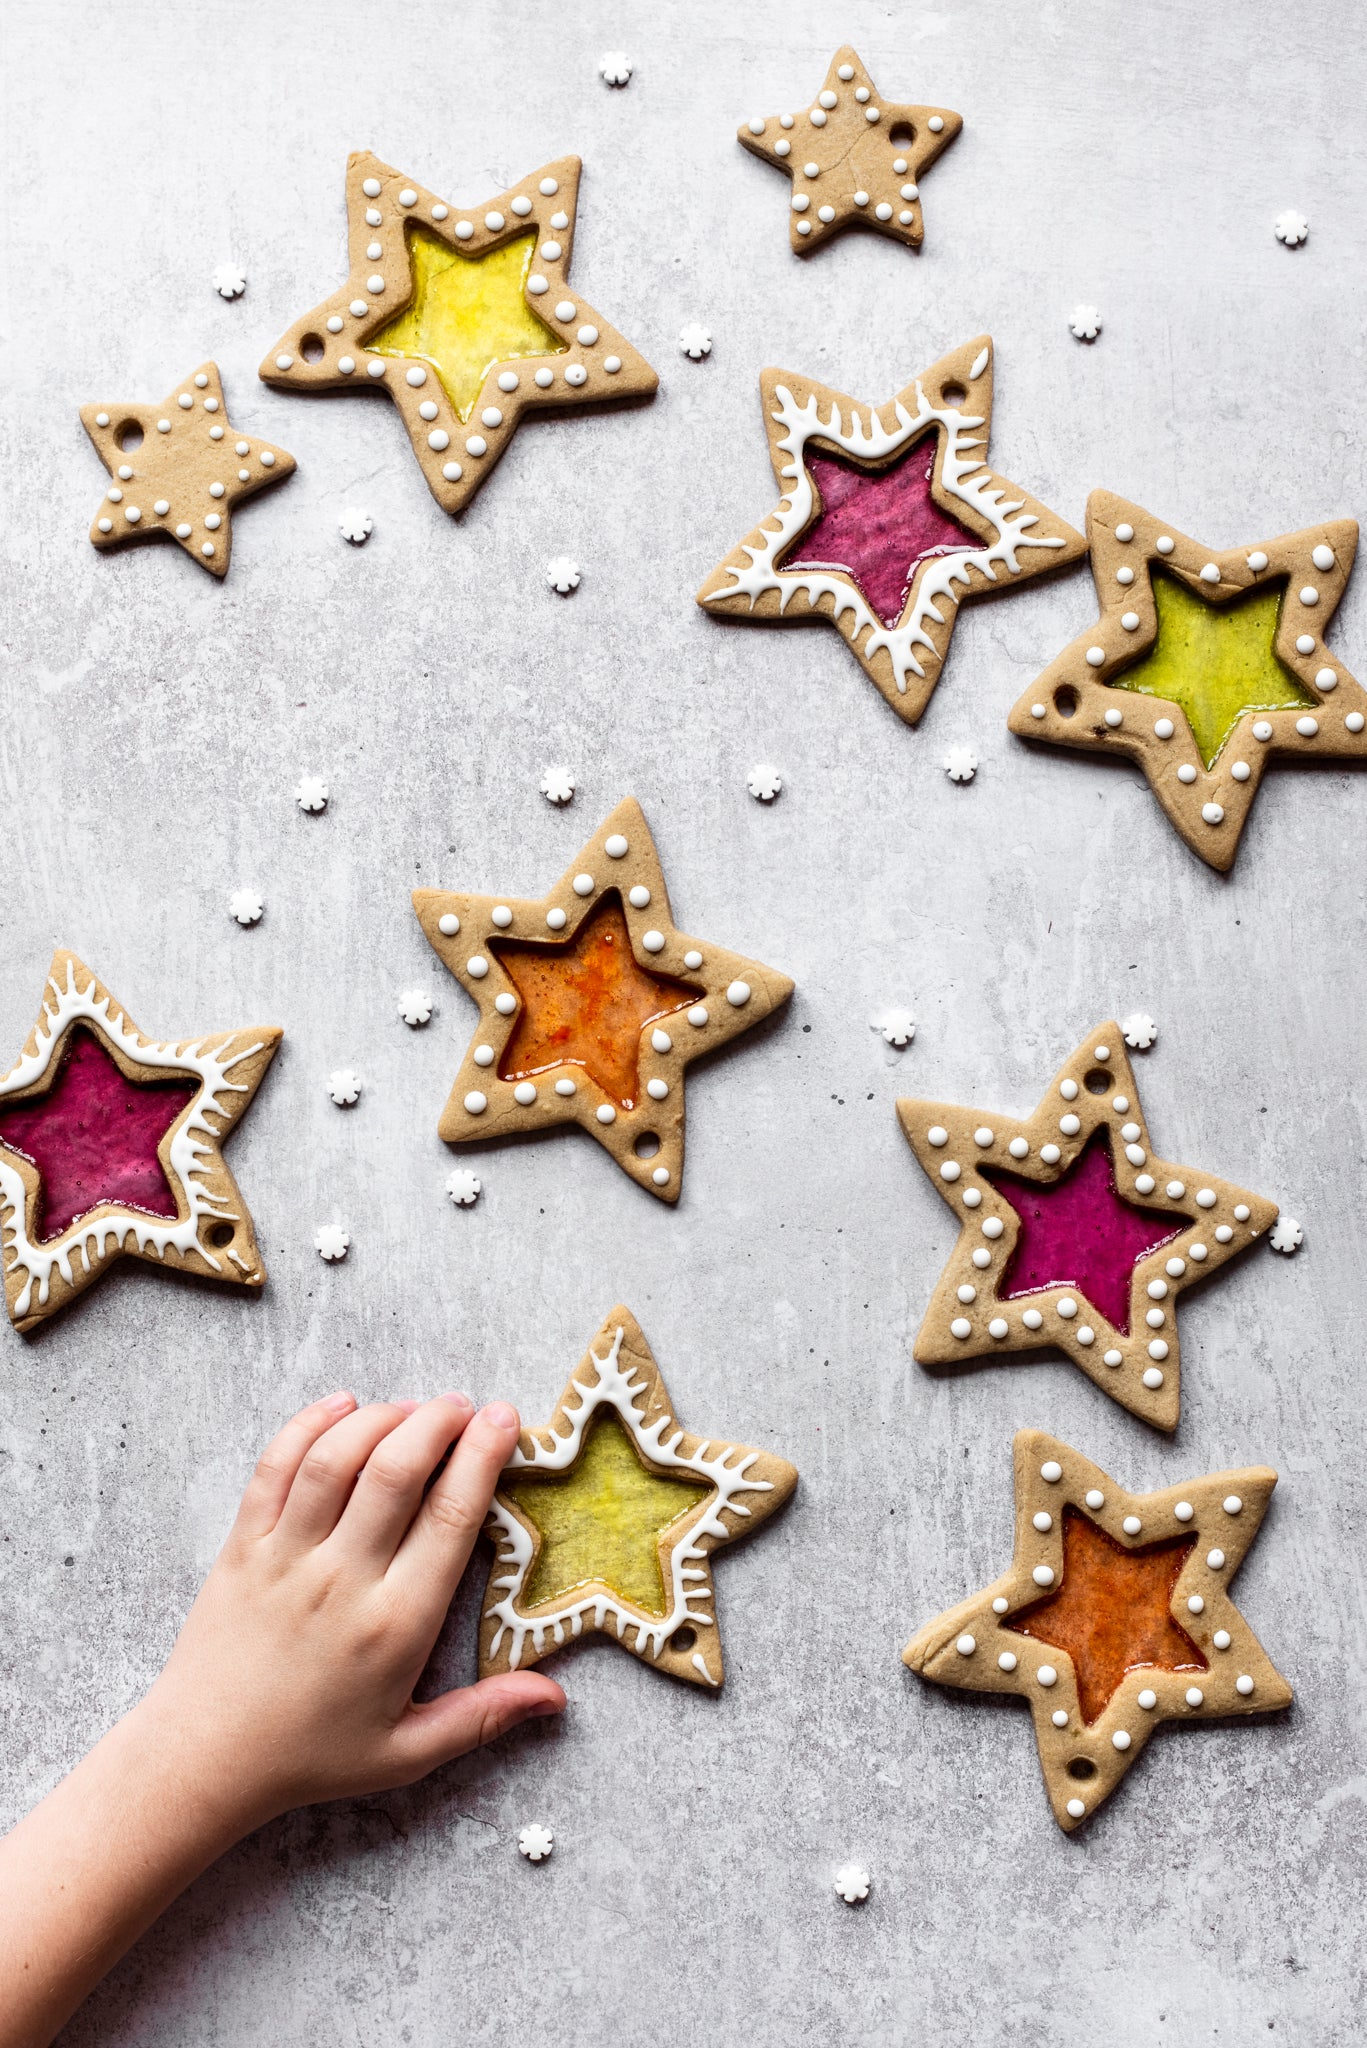 Stained-Glass-Biscuits-WEB-RES-5.jpg